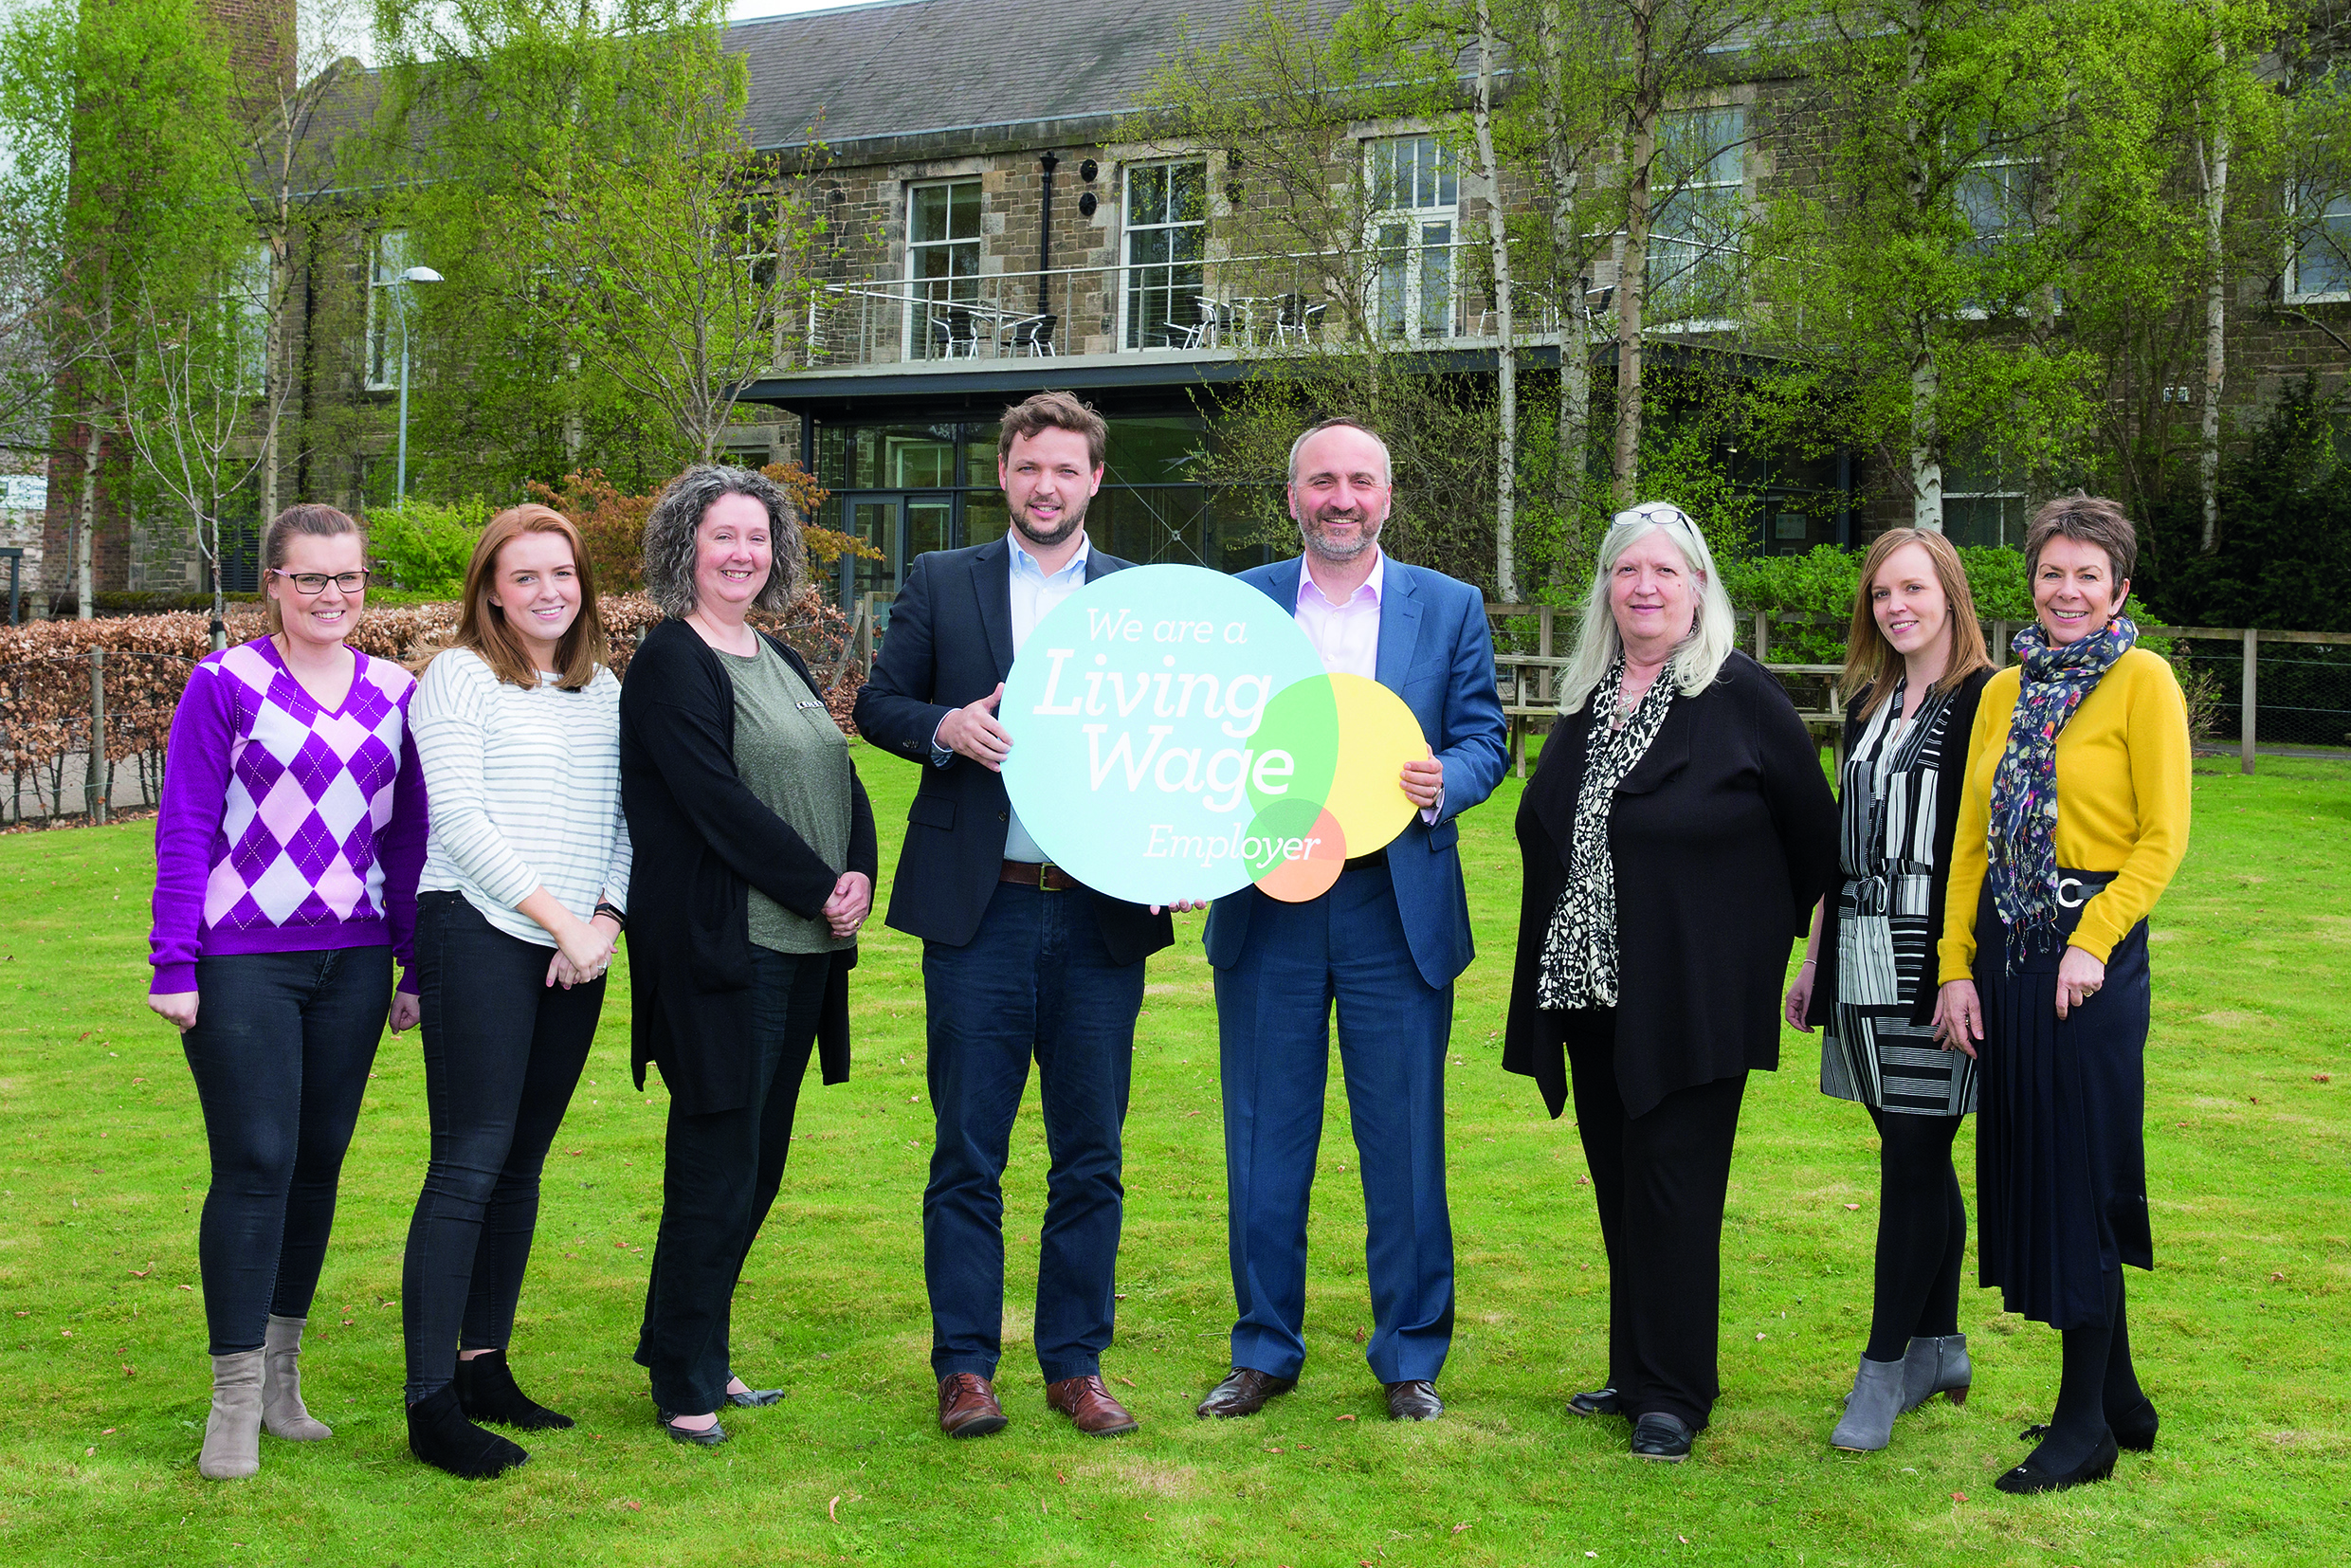 Eildon proud to be a Living Wage Employer